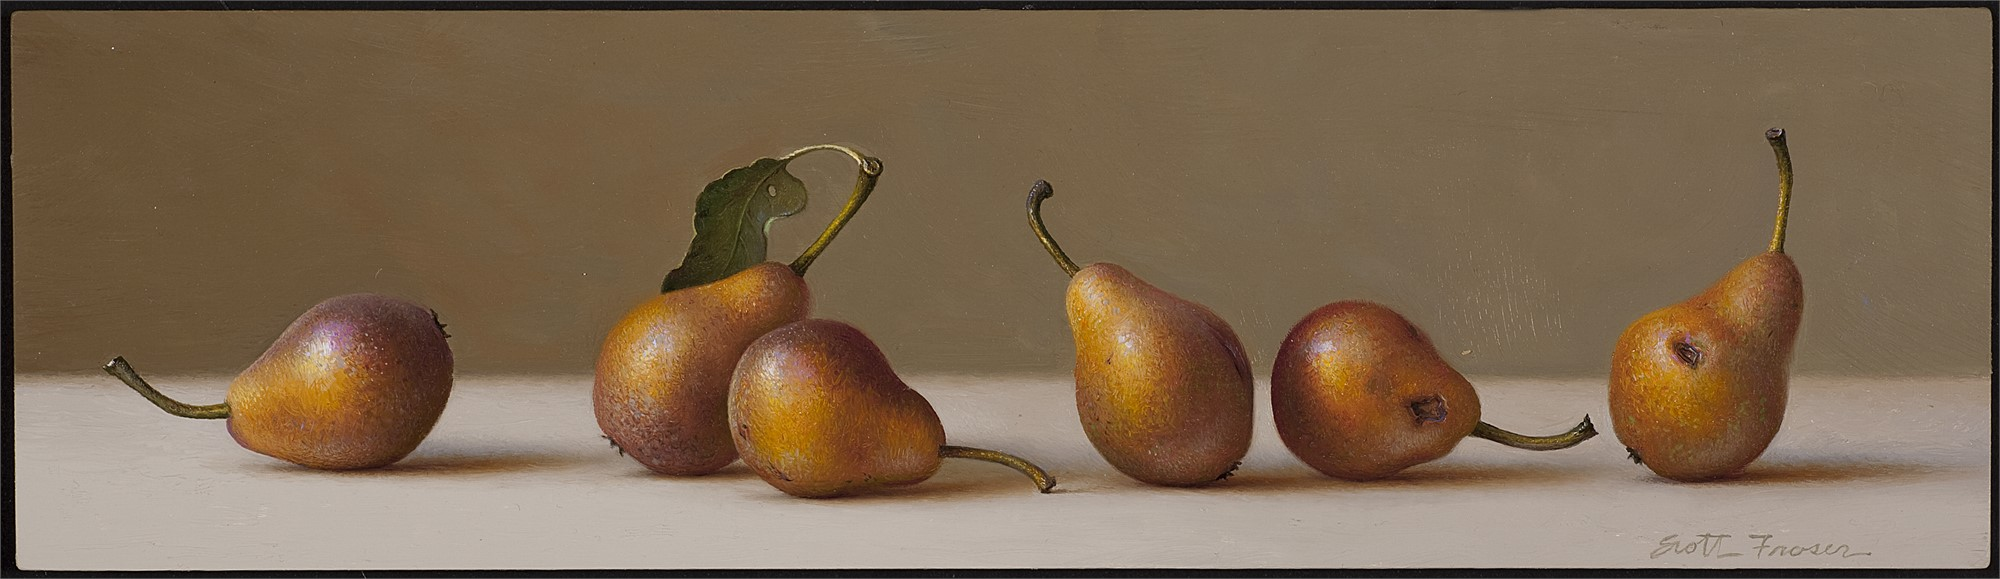 Six Pears by Scott Fraser